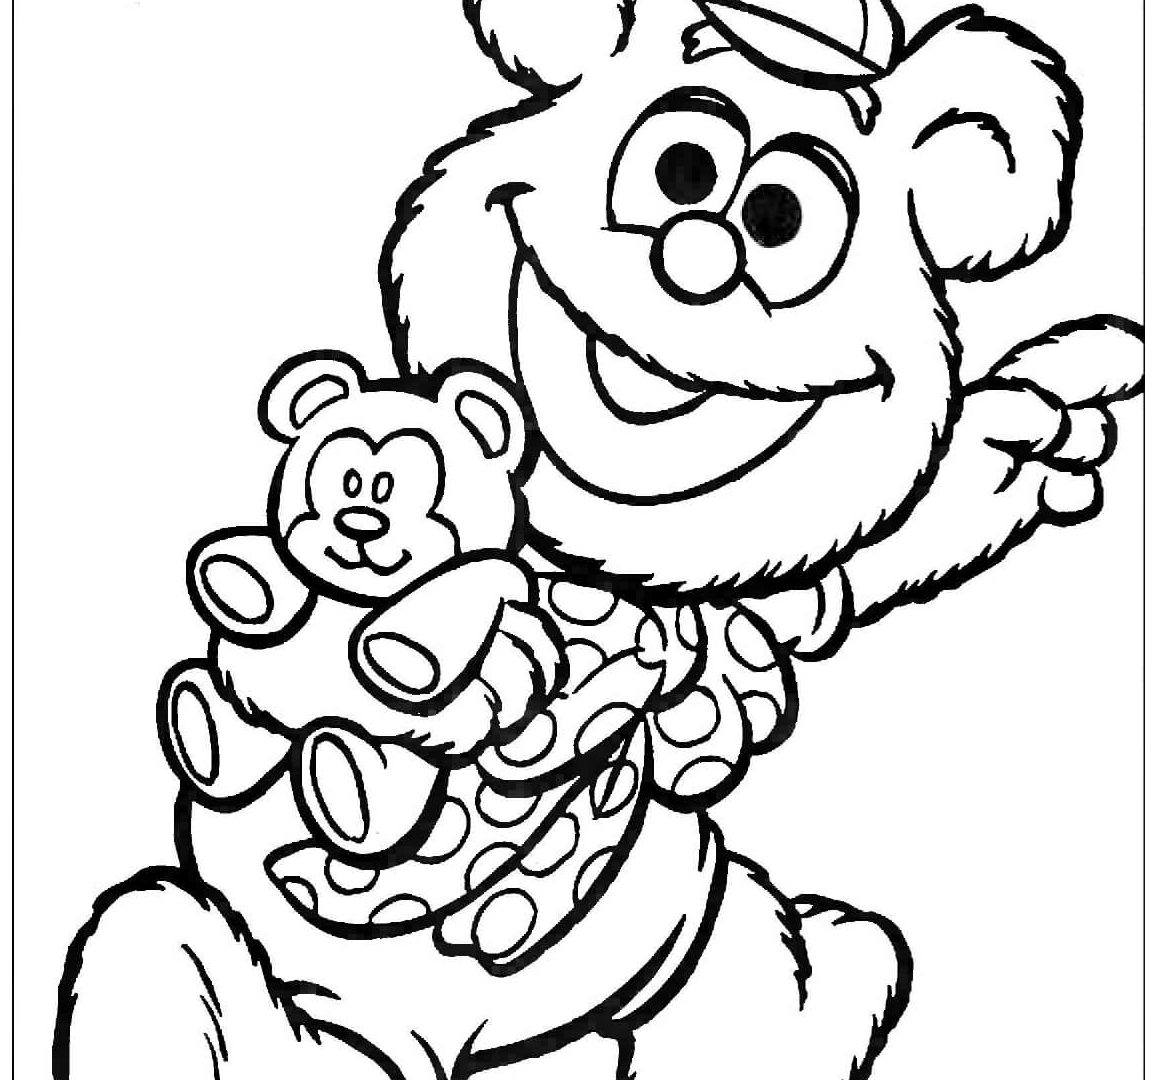 1156x1080 Muppet Babies Goes To Fair Market Coloring Page Free